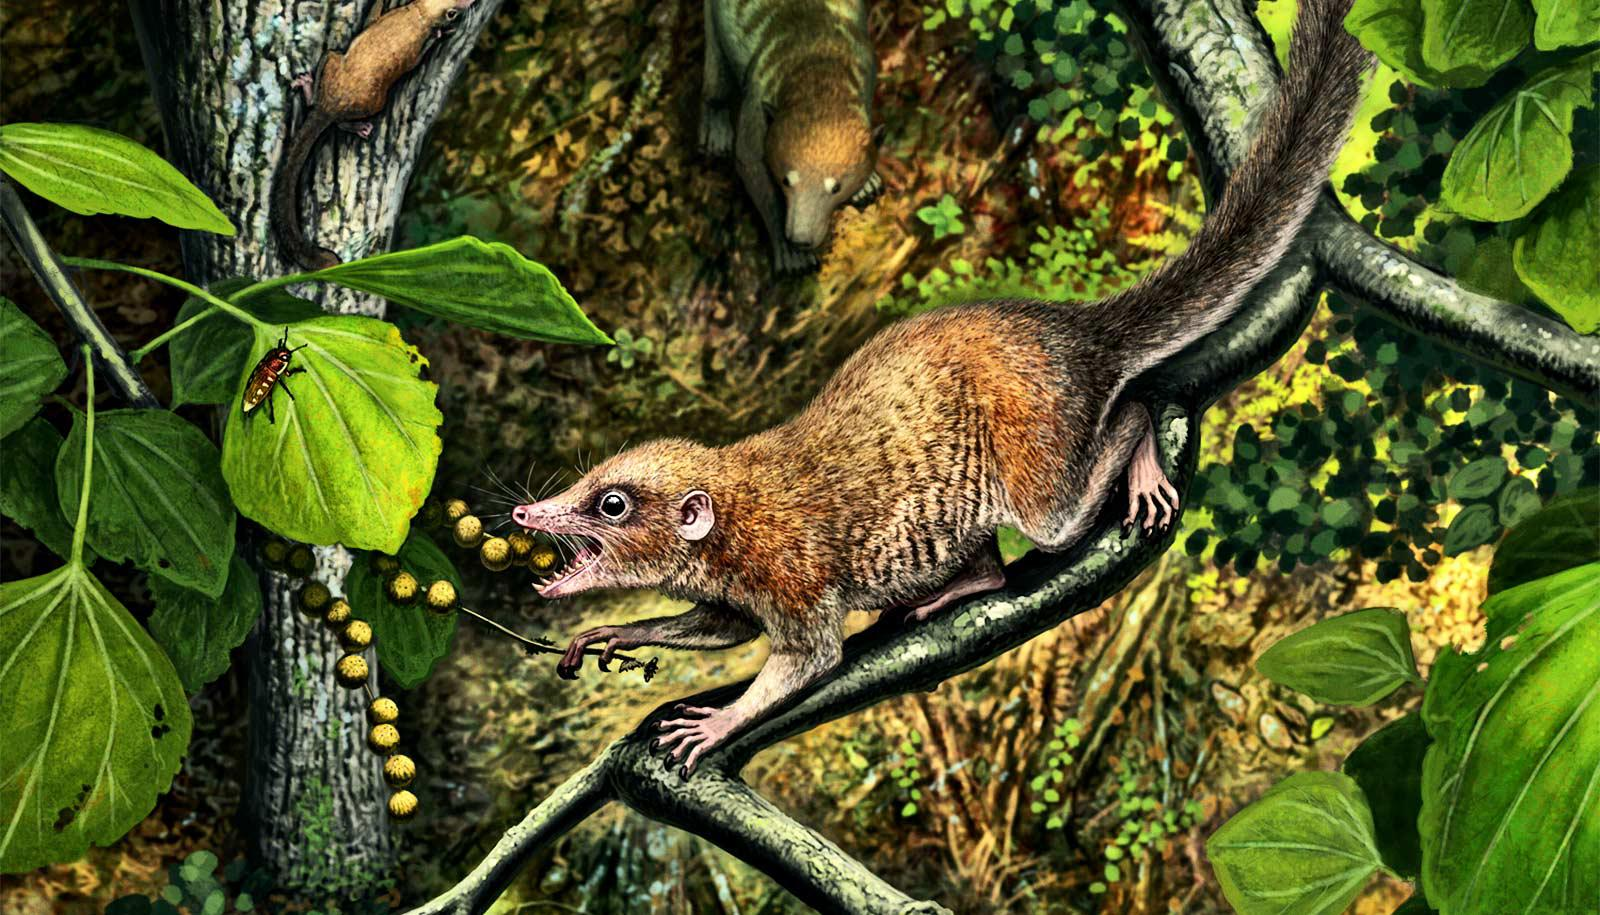 The Purgatorius mckeeveri has beady eyes, a rat-like face with small teeth, and a long bushy tail